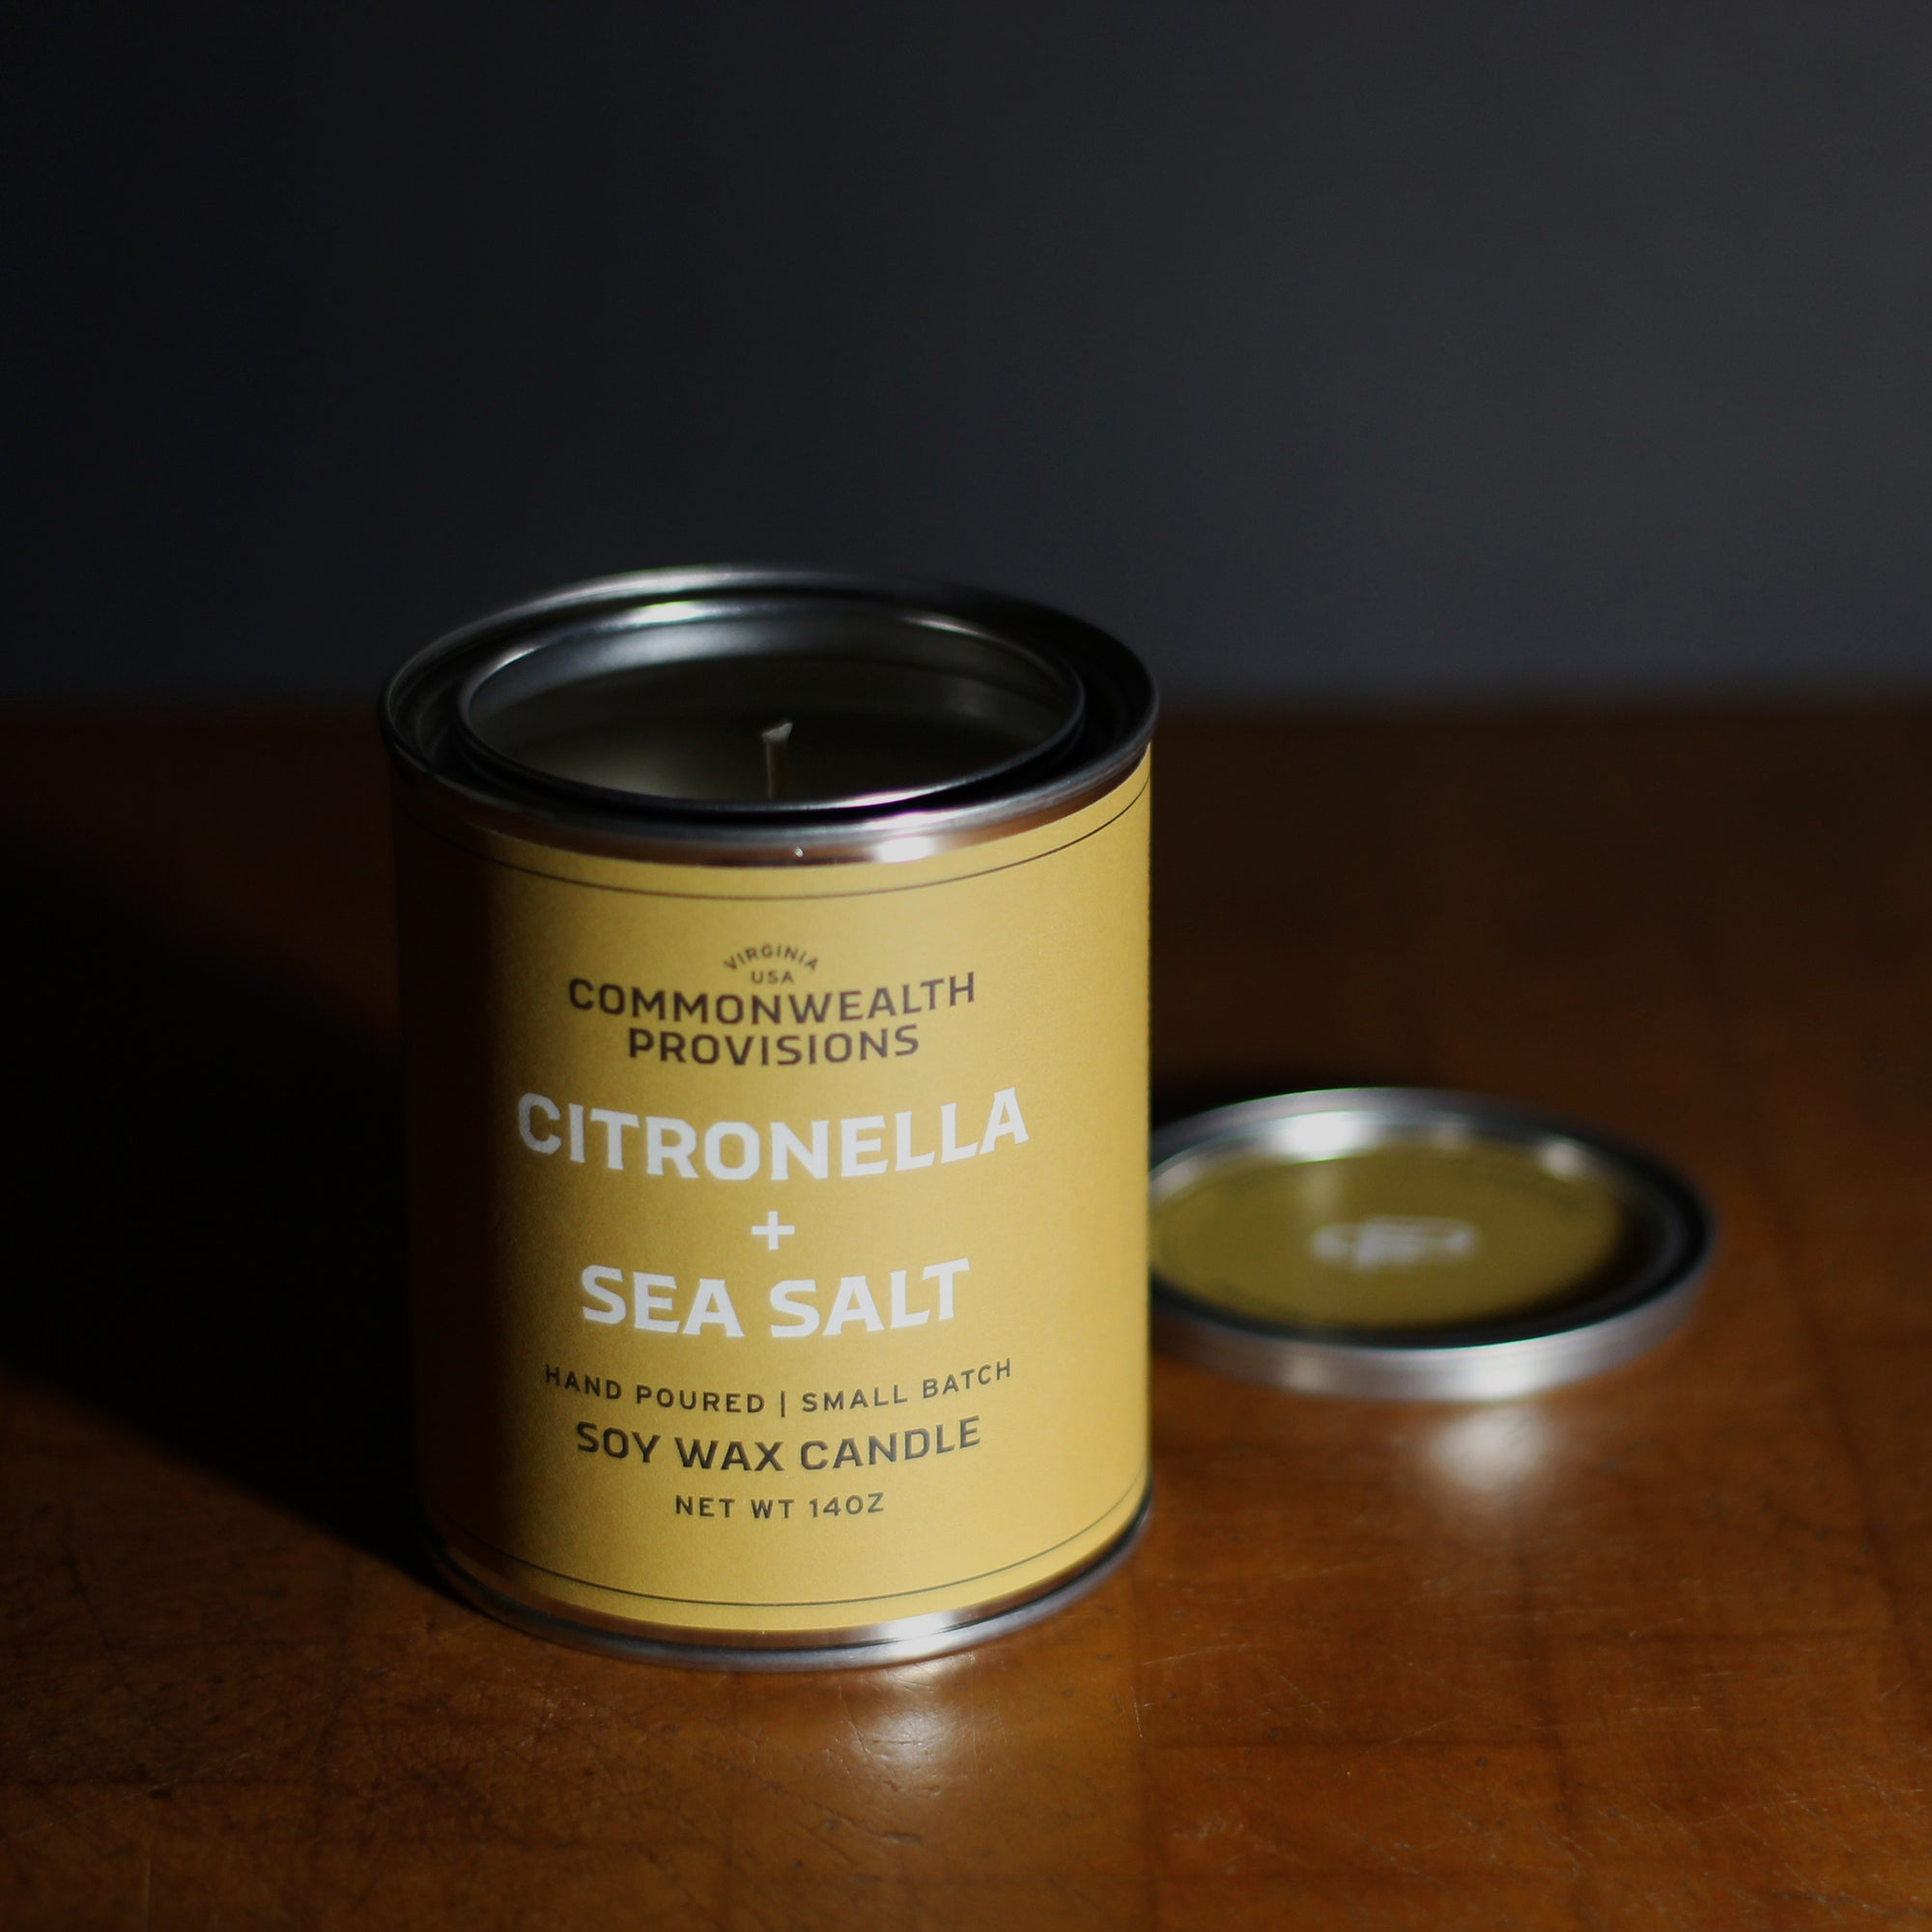 Commonwealth Provisions Citronella + Sea Salt Candle